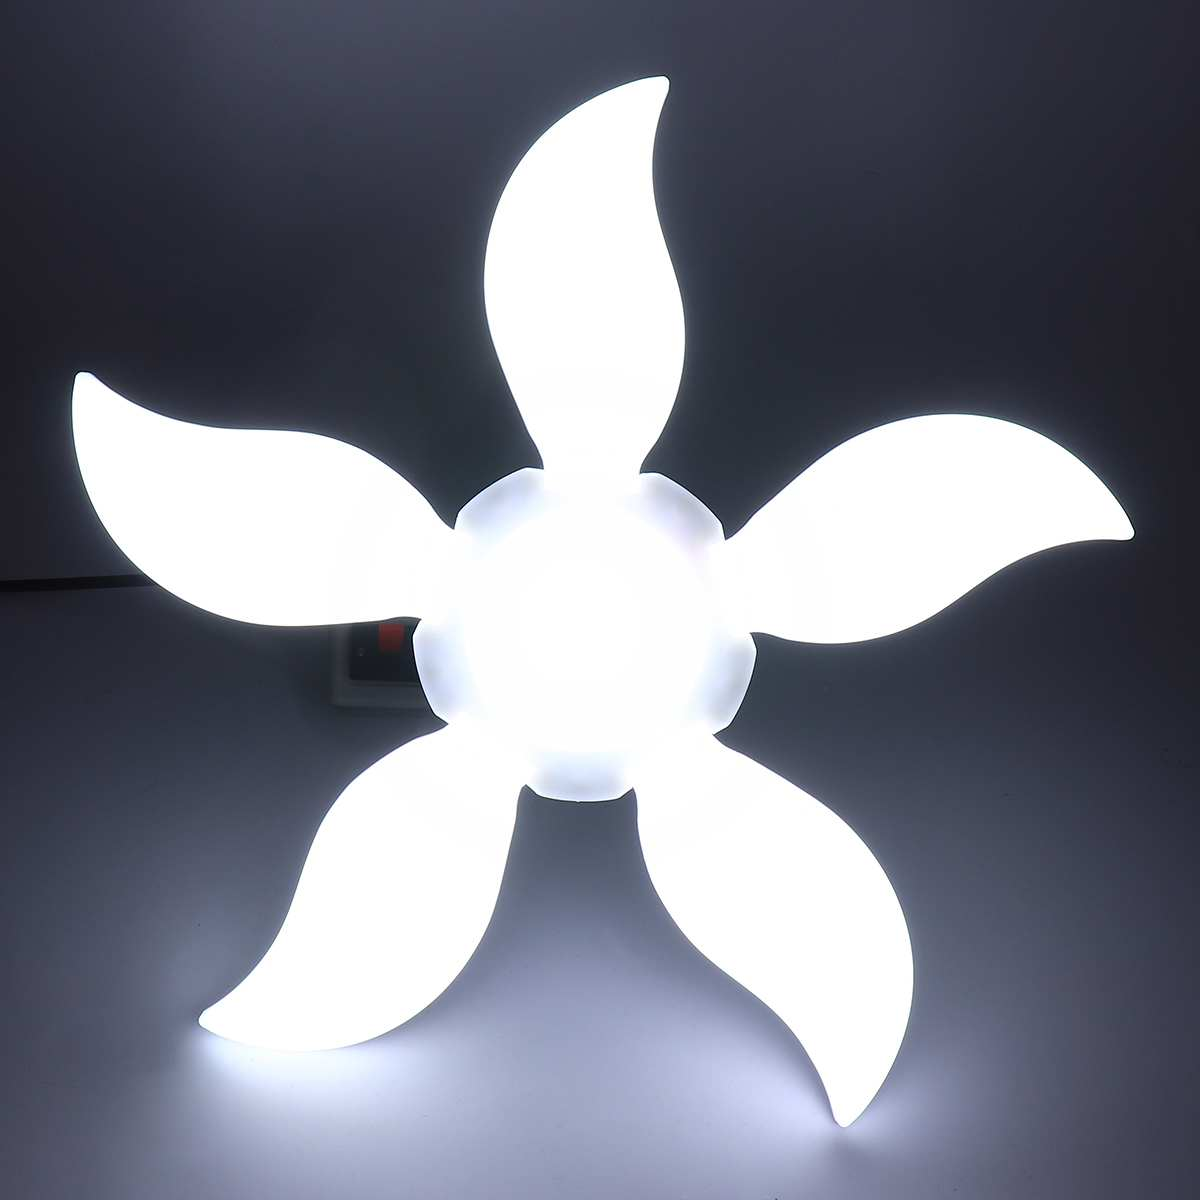 75W 140LED Garage Light 5-leaf Folding Deformable 4800LM E27 Fan Shape Ceiling Workshop Lamp